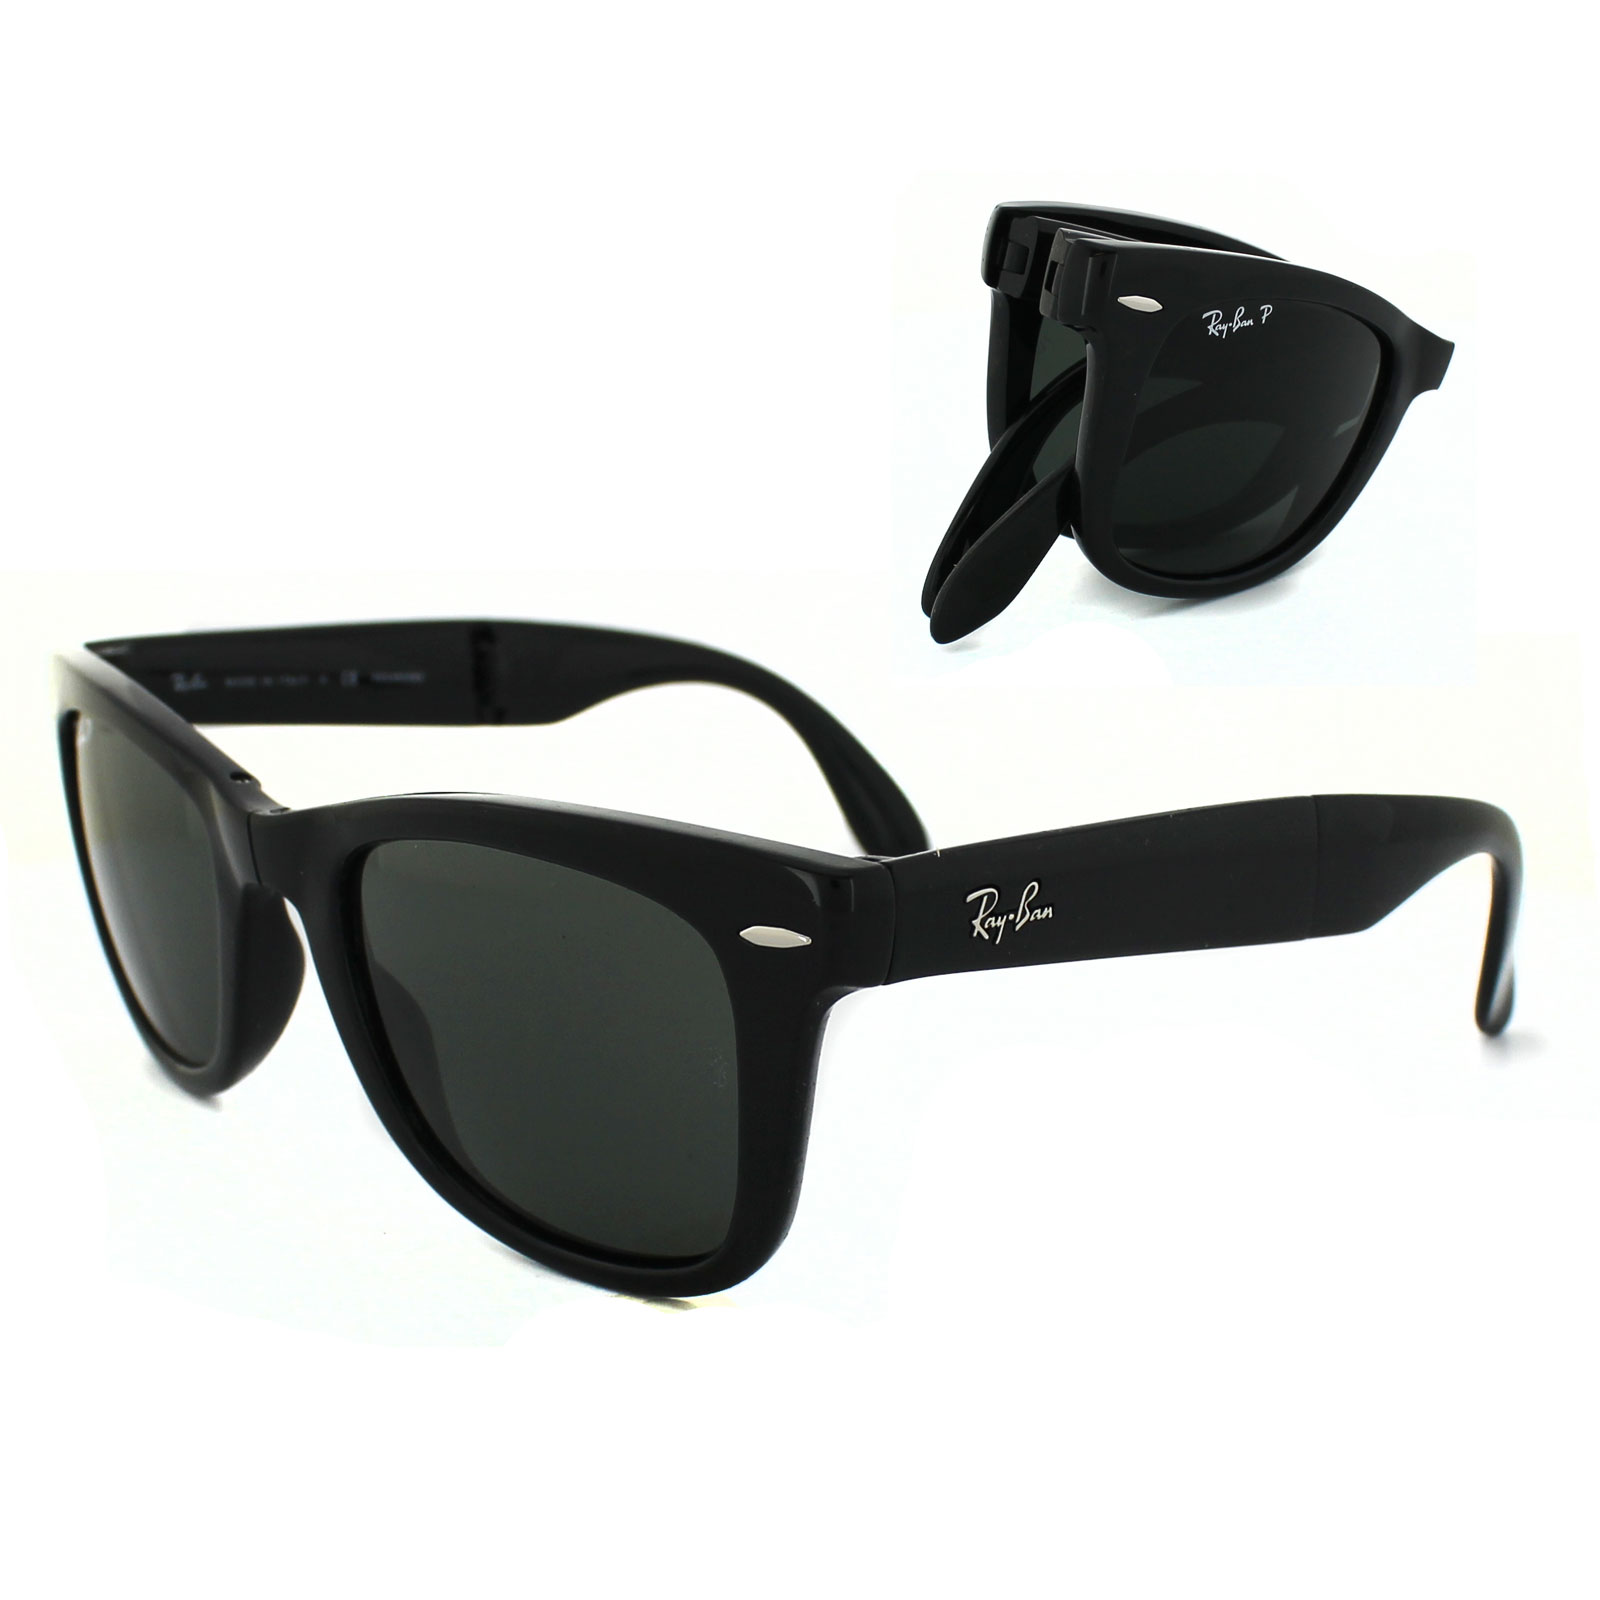 ray ban wayfarer folding i117  Sentinel Ray-Ban Sunglasses Folding Wayfarer 4105 Black Green Polarized  601/58 Medium